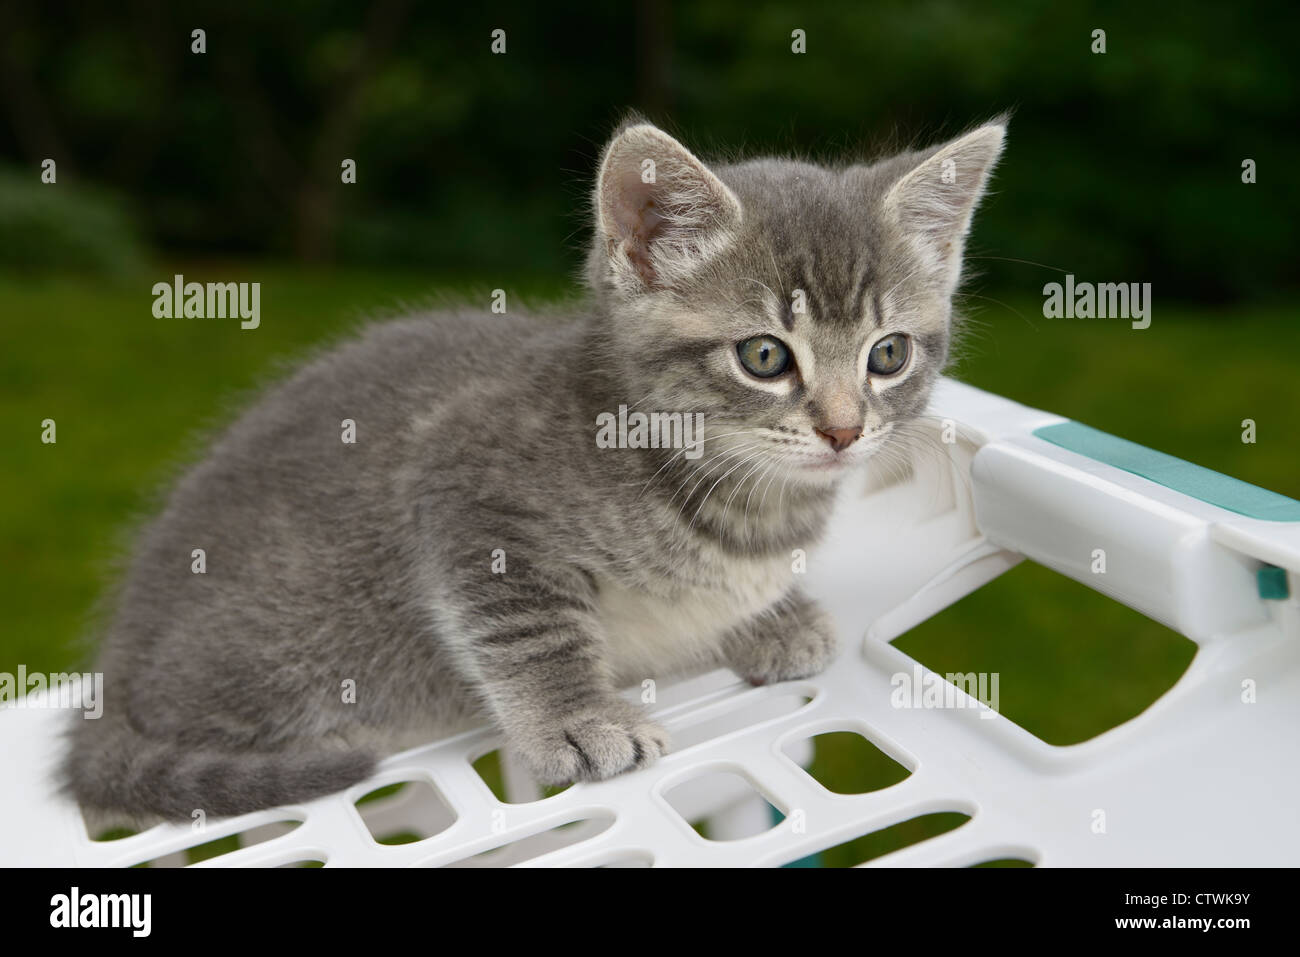 Cautious male gray tabby kitten on a laundry basket outdoors with the M forhead - Stock Image